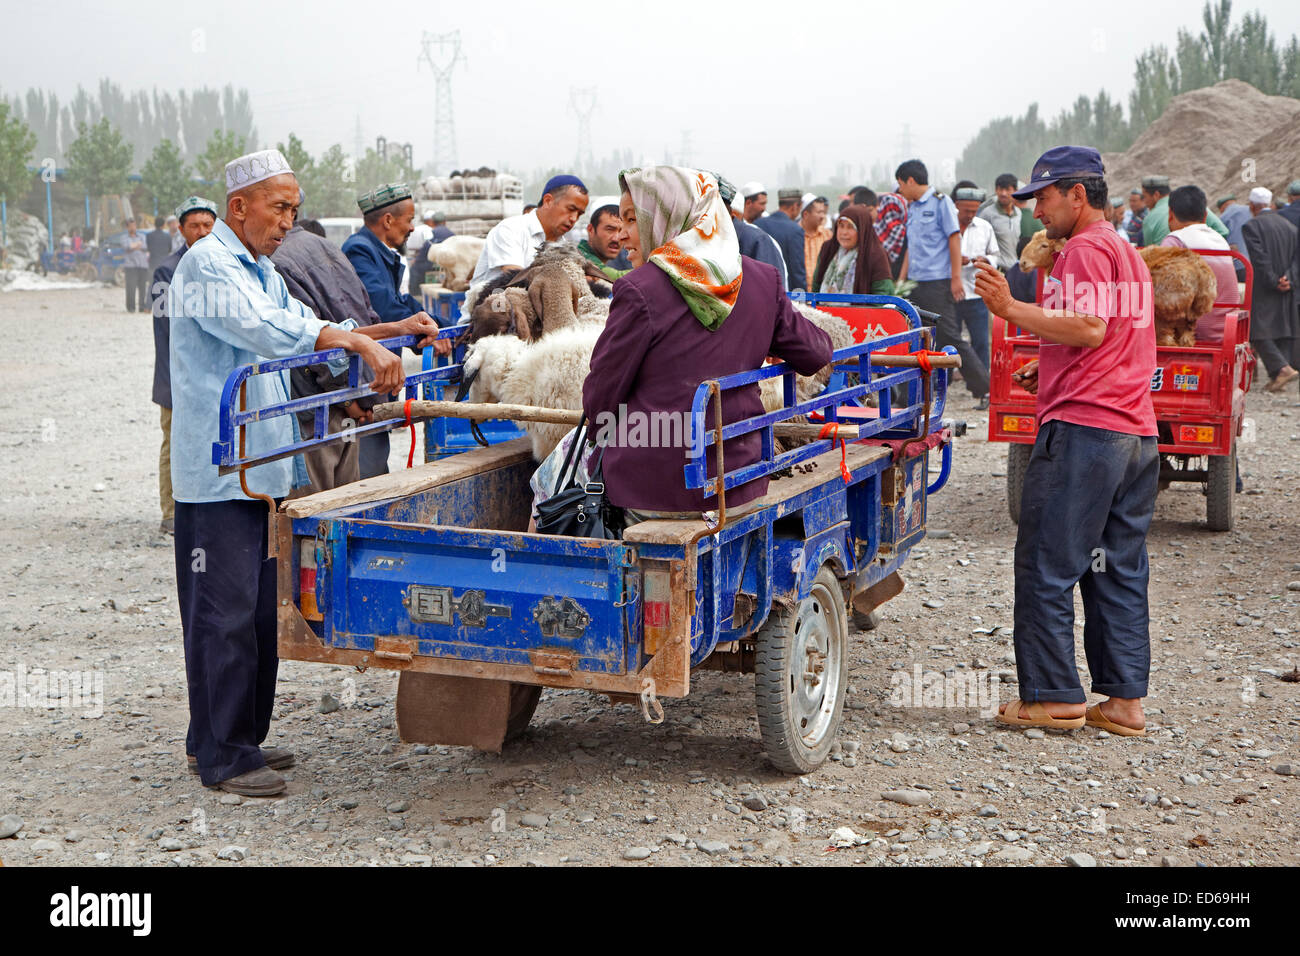 Uyghur farmers with motorized carts loaded with sheep arriving at the cattle market in Kashgar / Kashi, Xinjiang - Stock Image